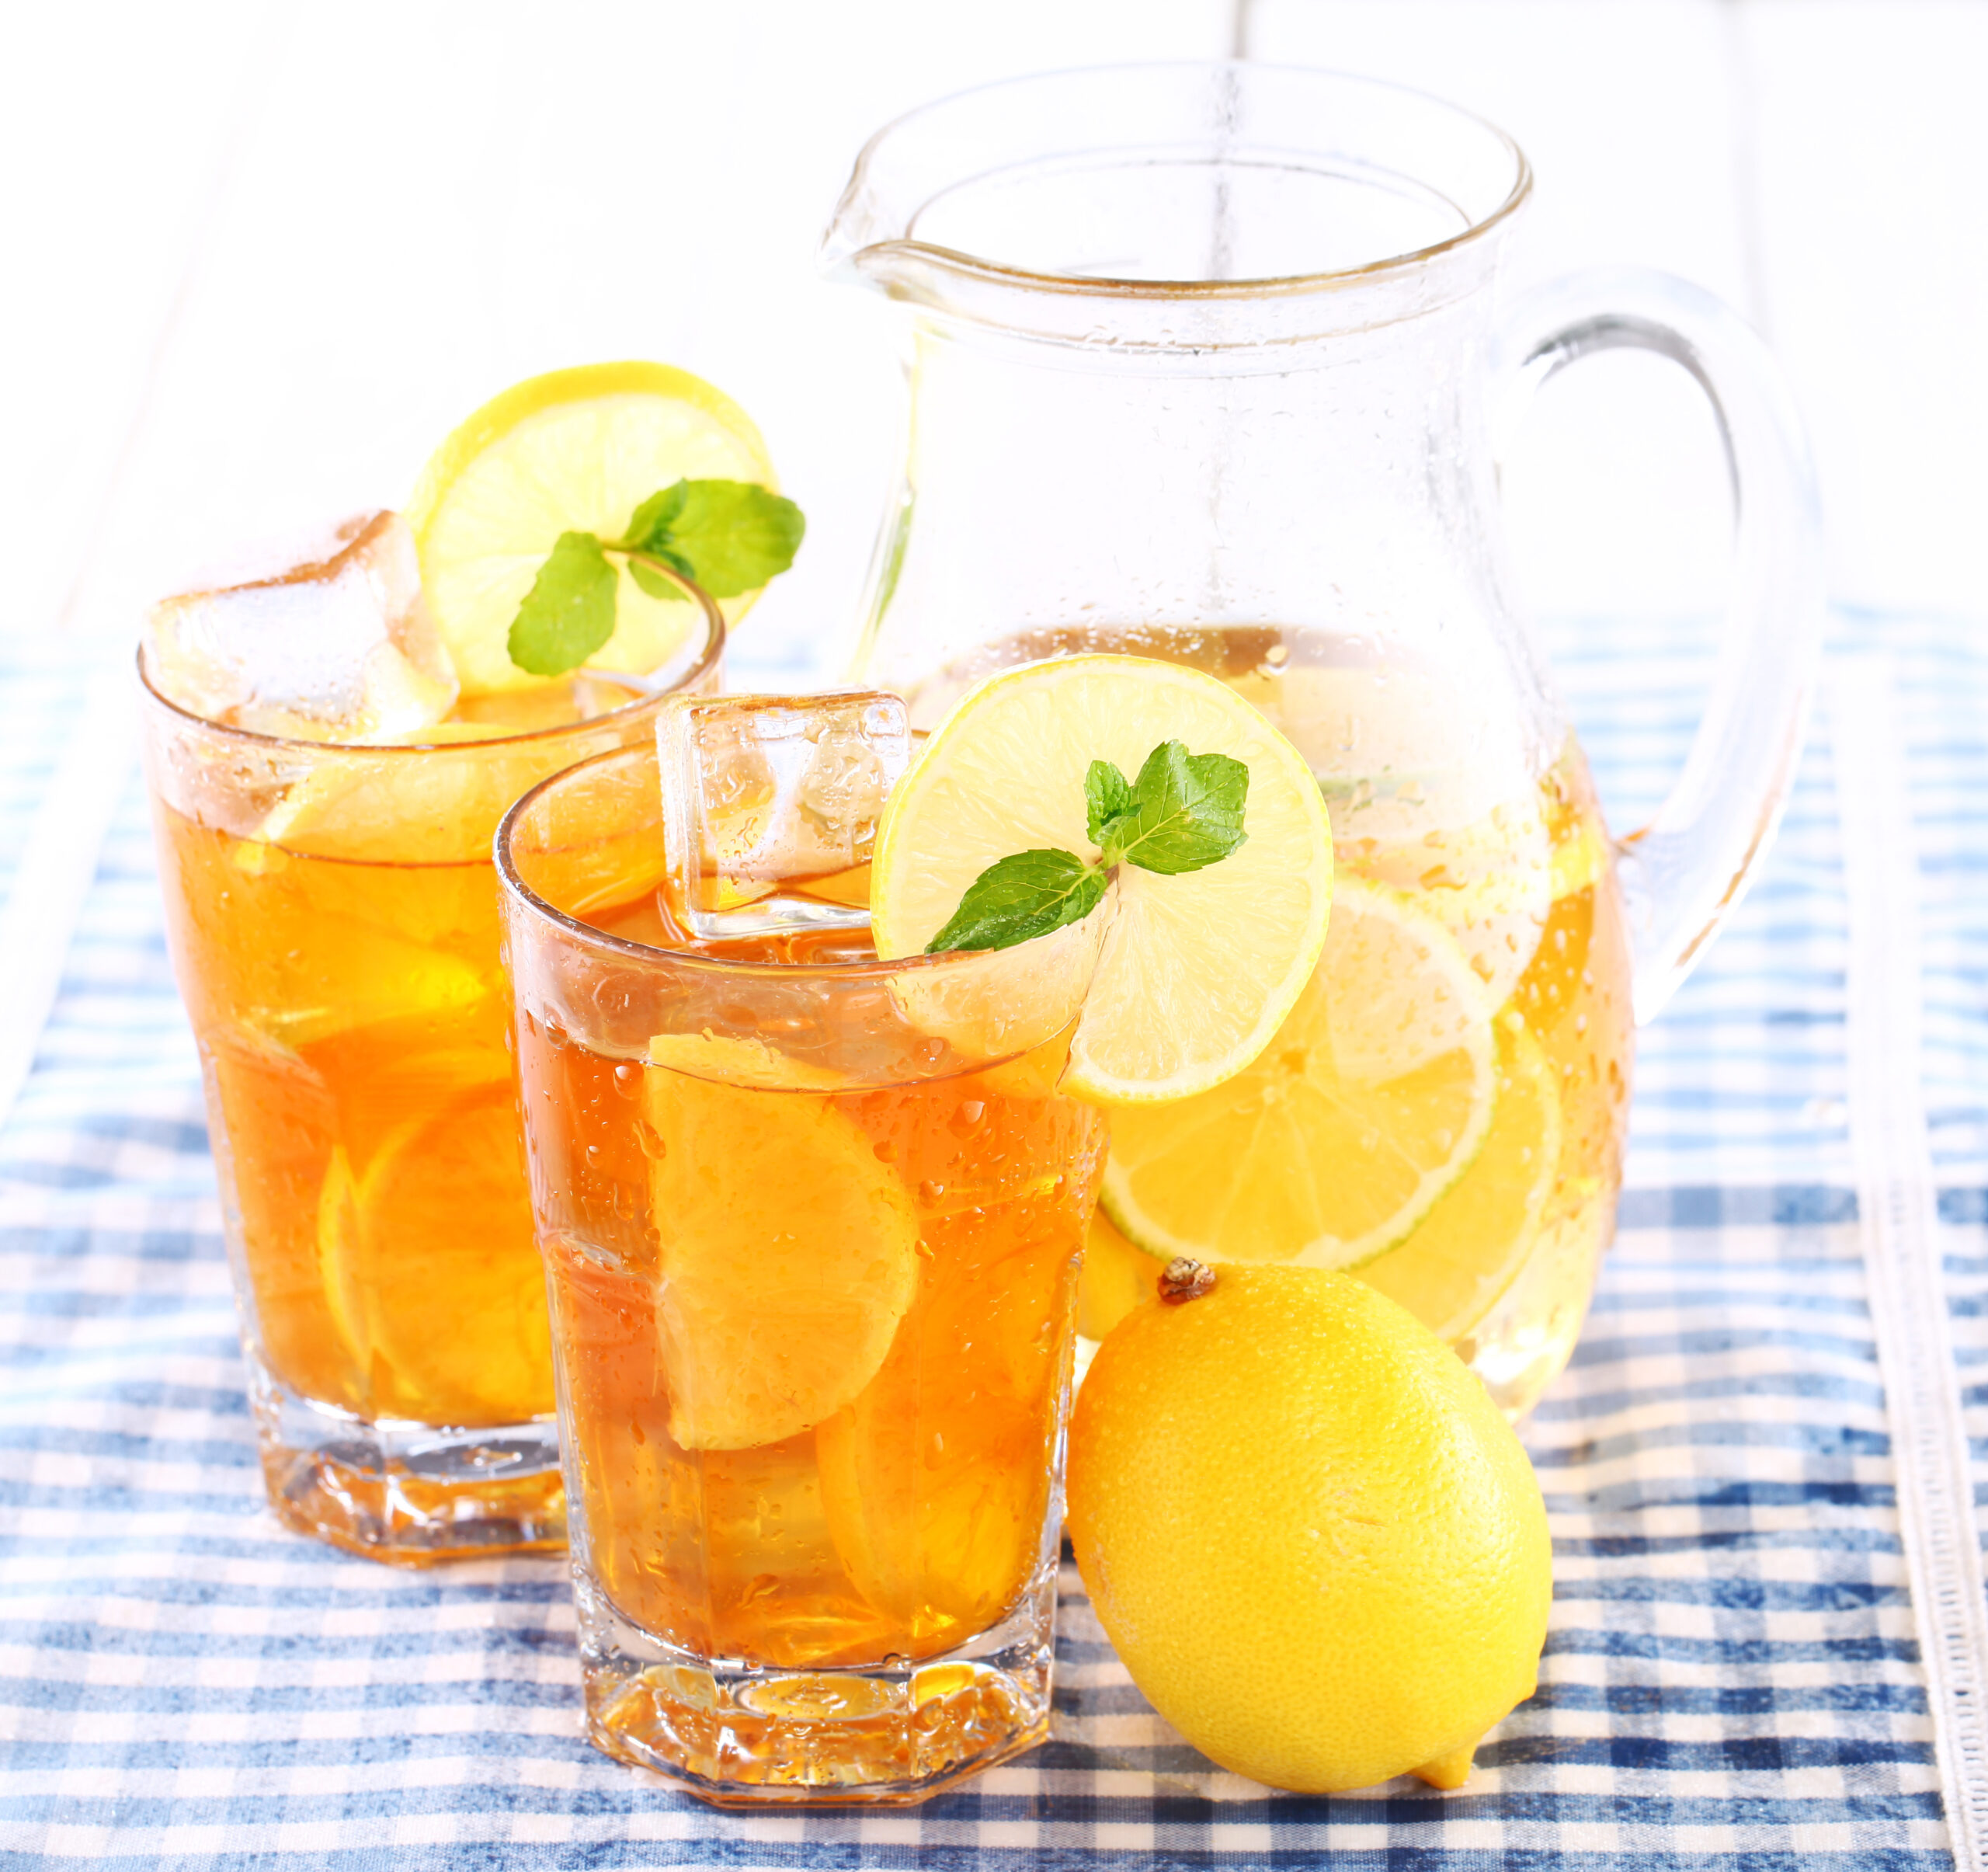 Pitcher of Iced Tea with two glasses